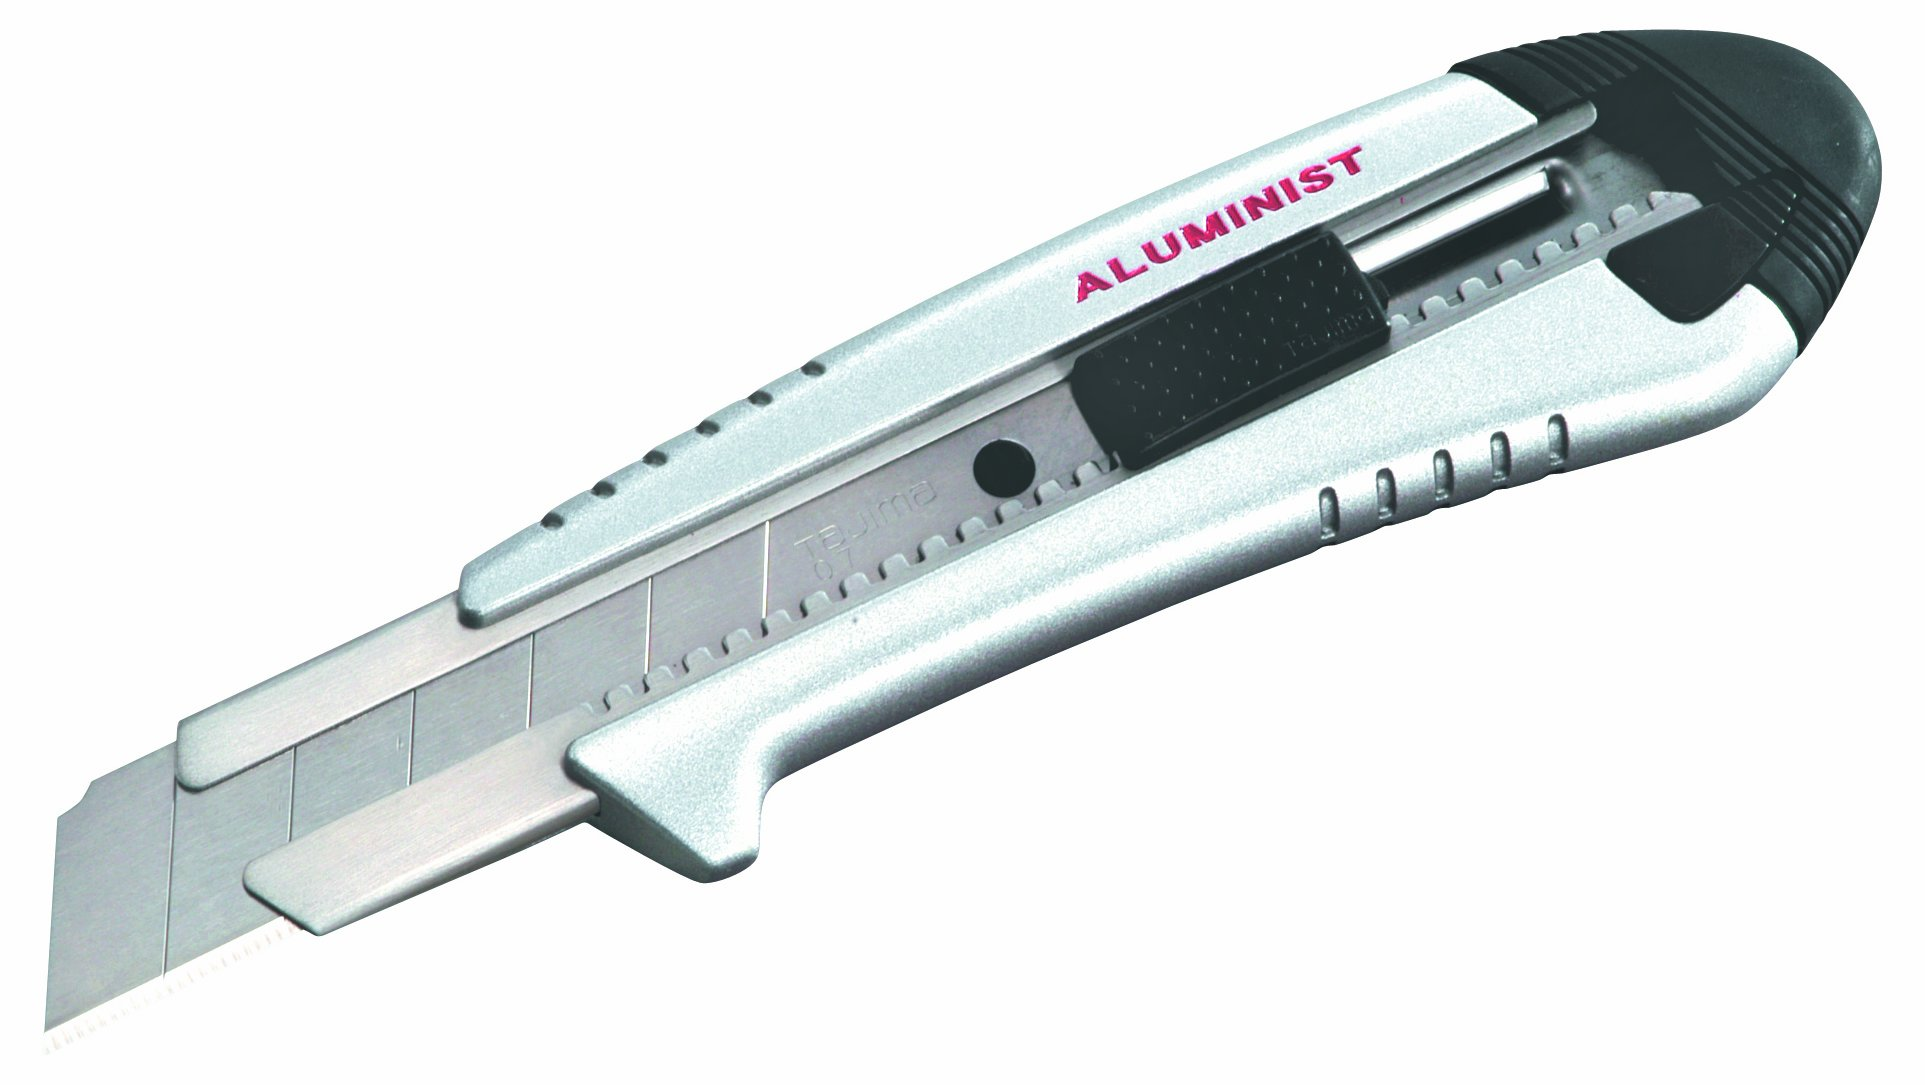 Tajima AC-700S Silver Rock Hard Aluminist knife, Auto Lock with 3 Rock Hard blades